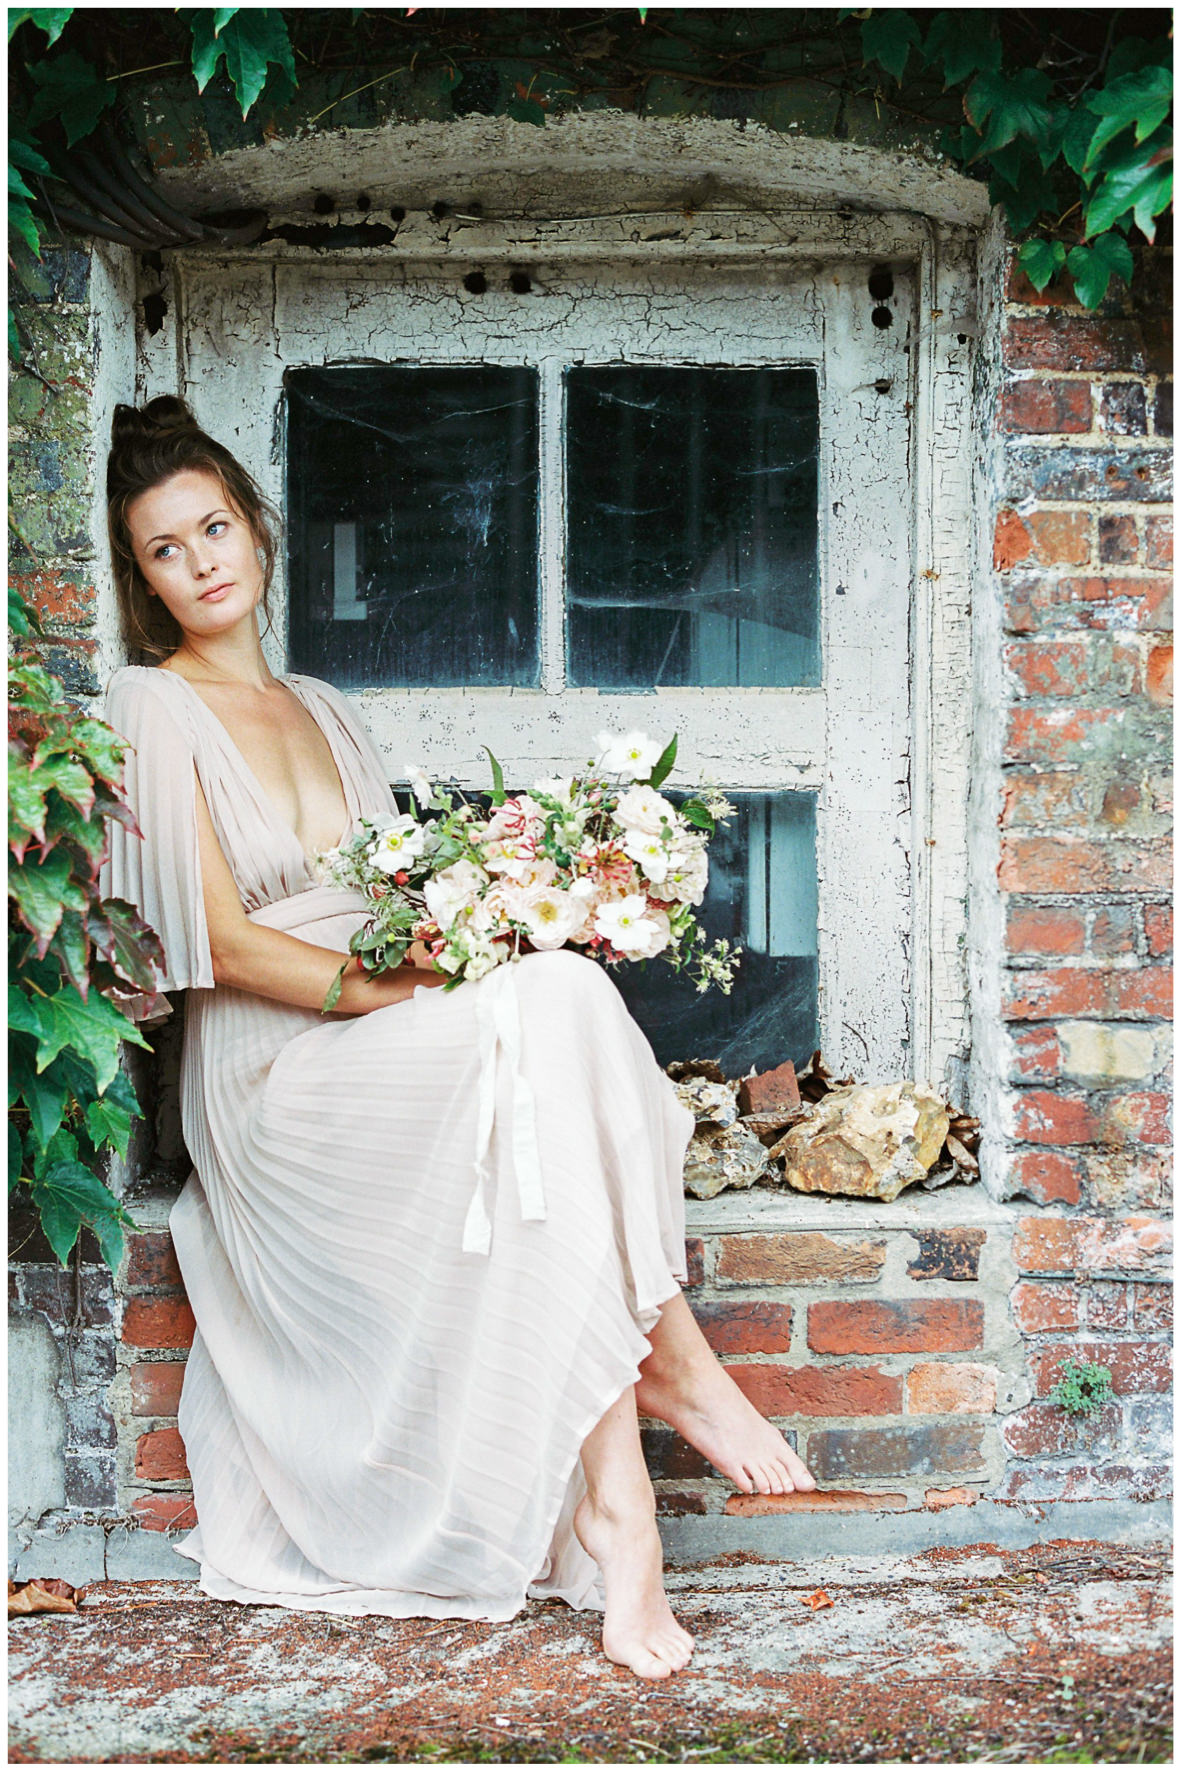 Lucy Davenport Photography, Once Wed, Home Creations, The Wedding Stylist, Verity & Thyme, model sat on window sill, florals, bouquet,